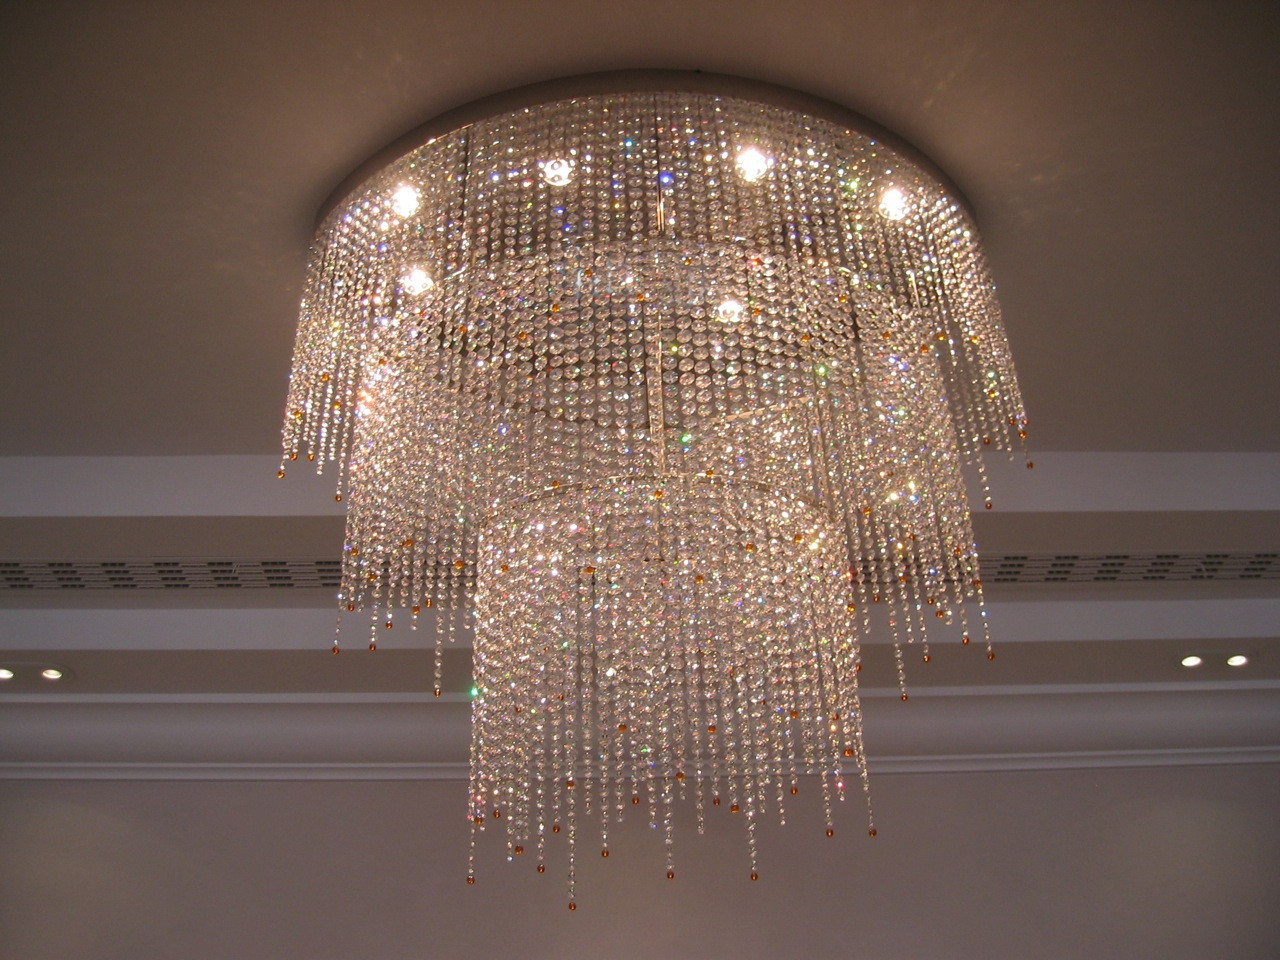 BESPOKE TRIPLE TIER OVAL CHANDELIER